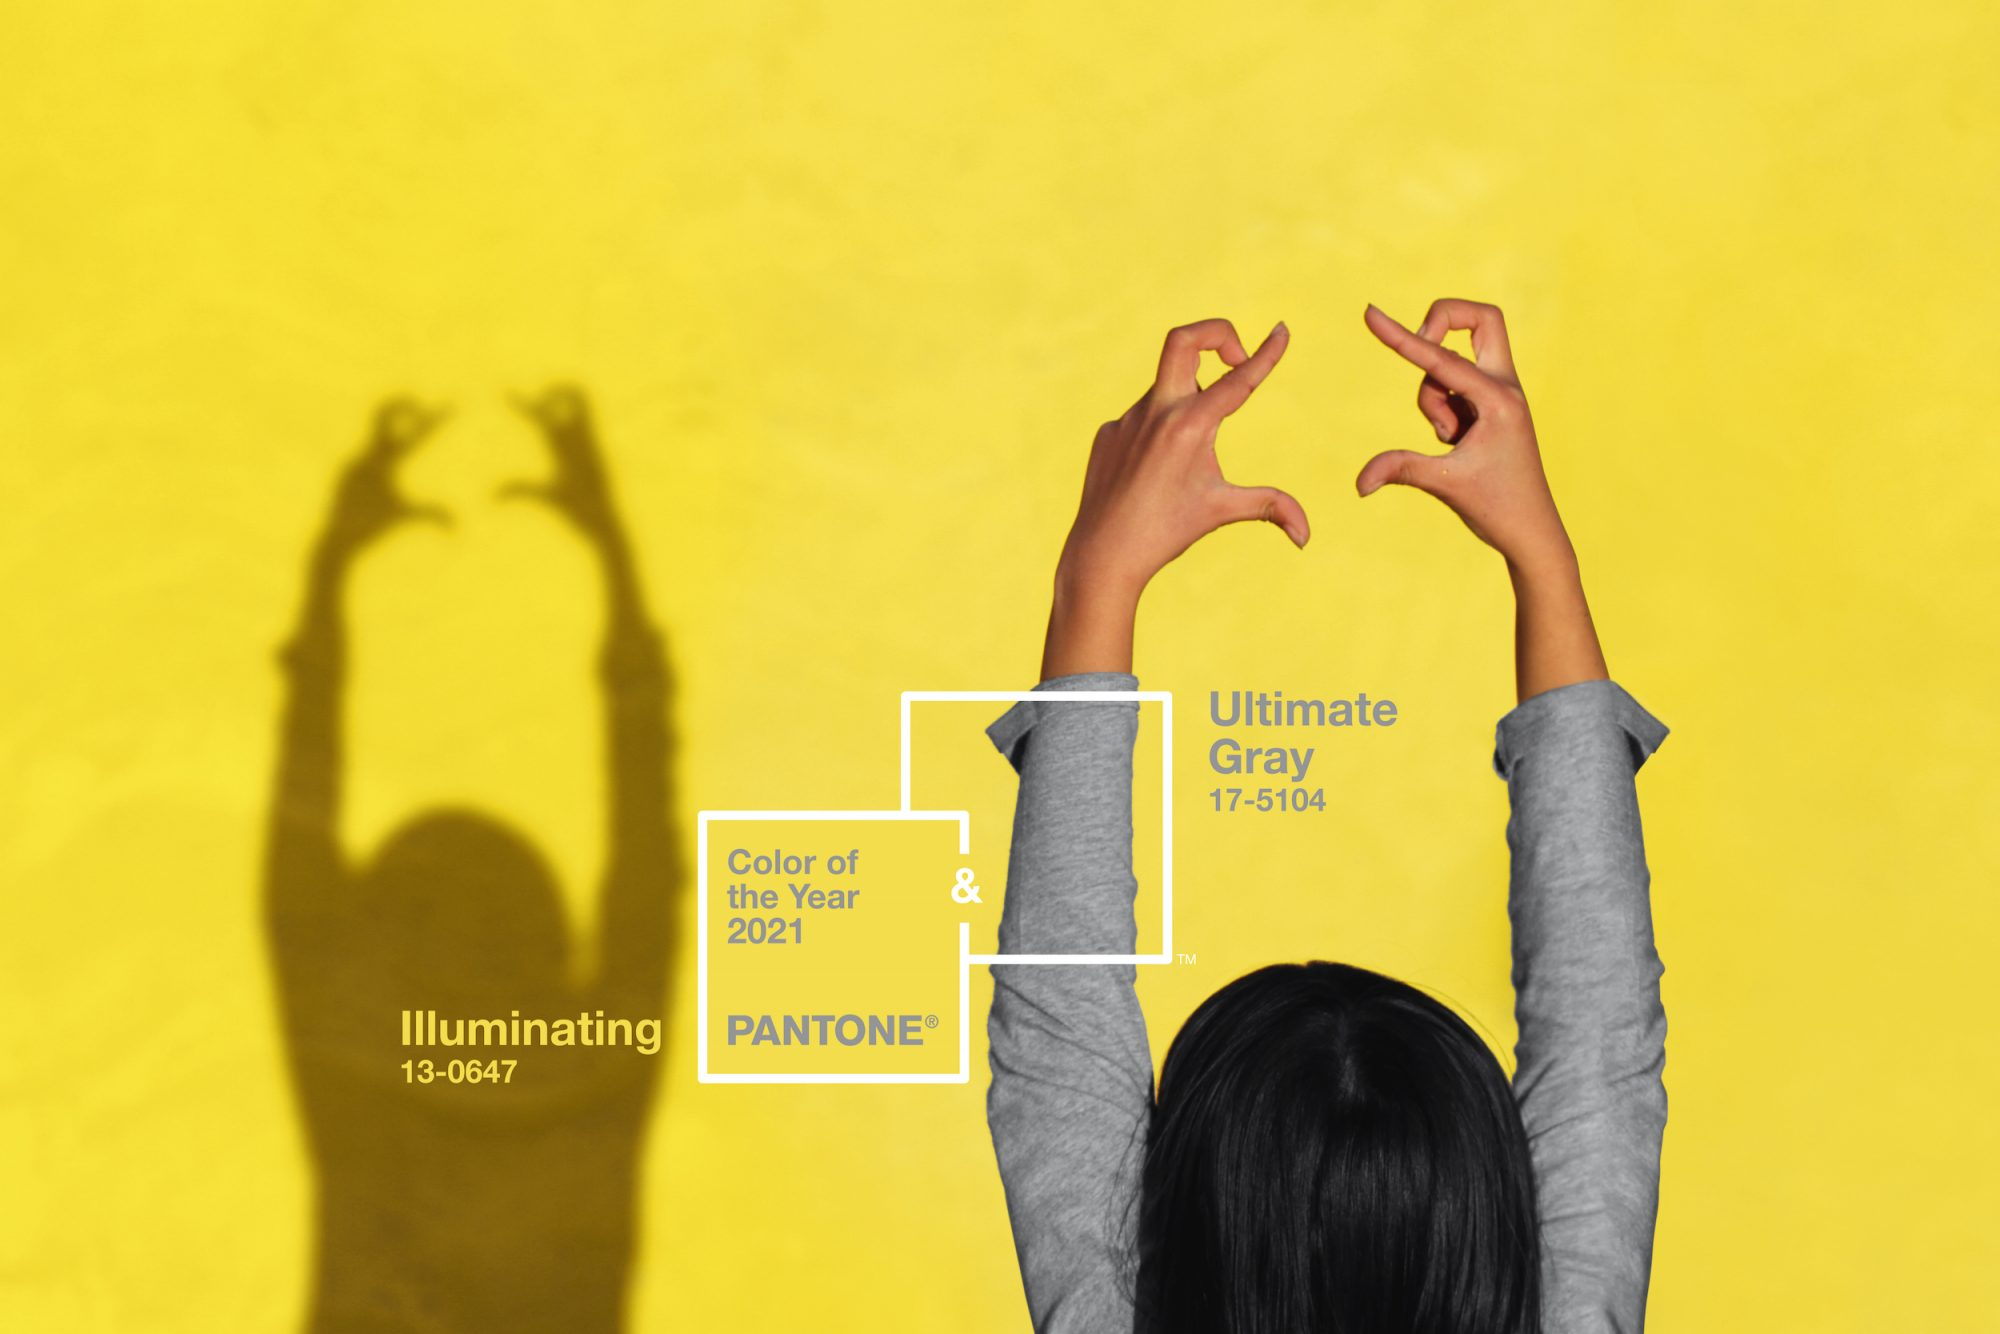 Pantone Color of the Year 2021, Illuminating and Ultimate Gray